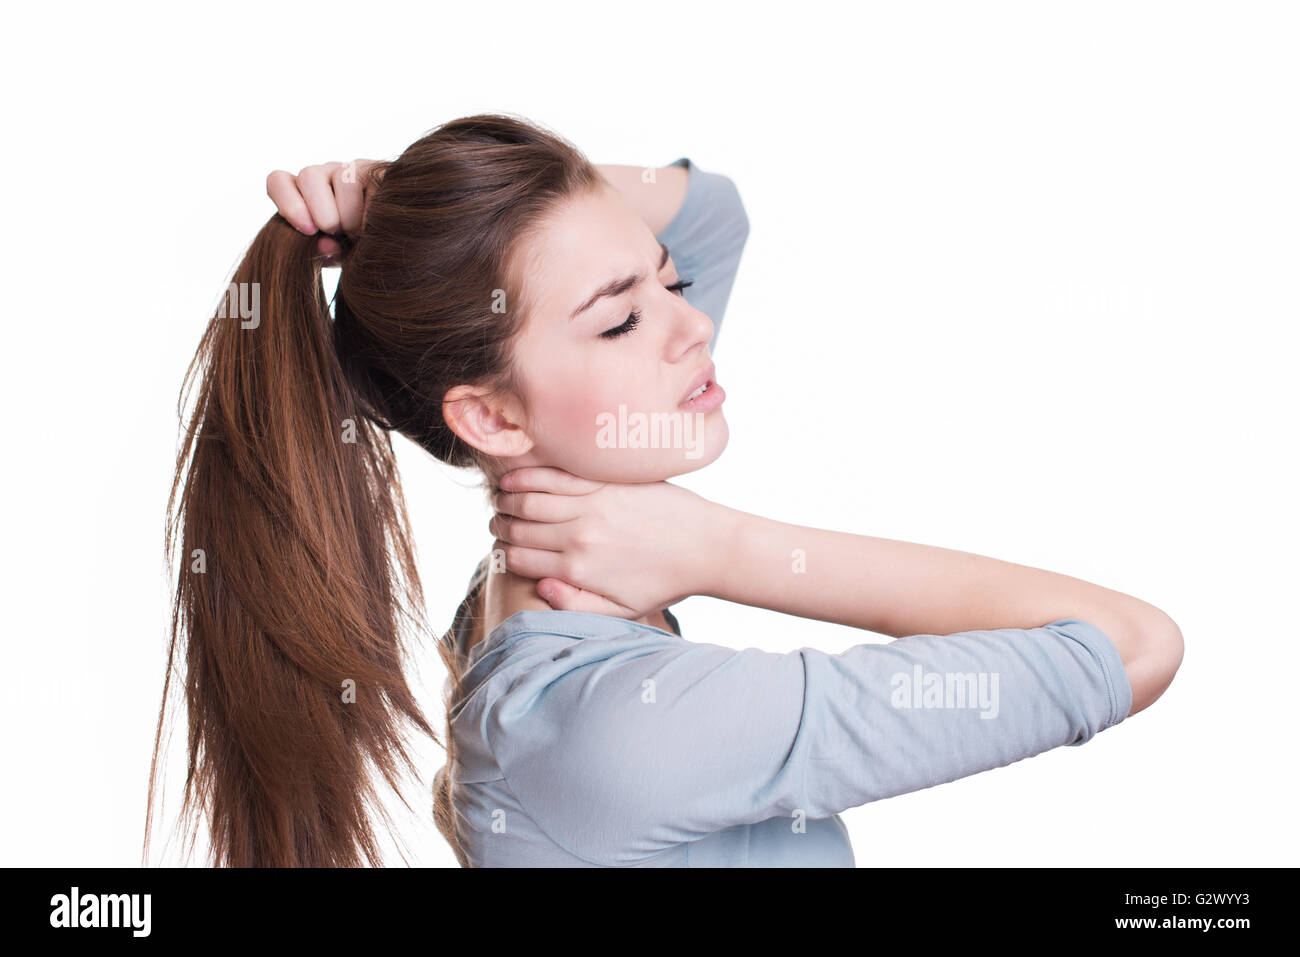 Young woman suffer from neck pain - Stock Image